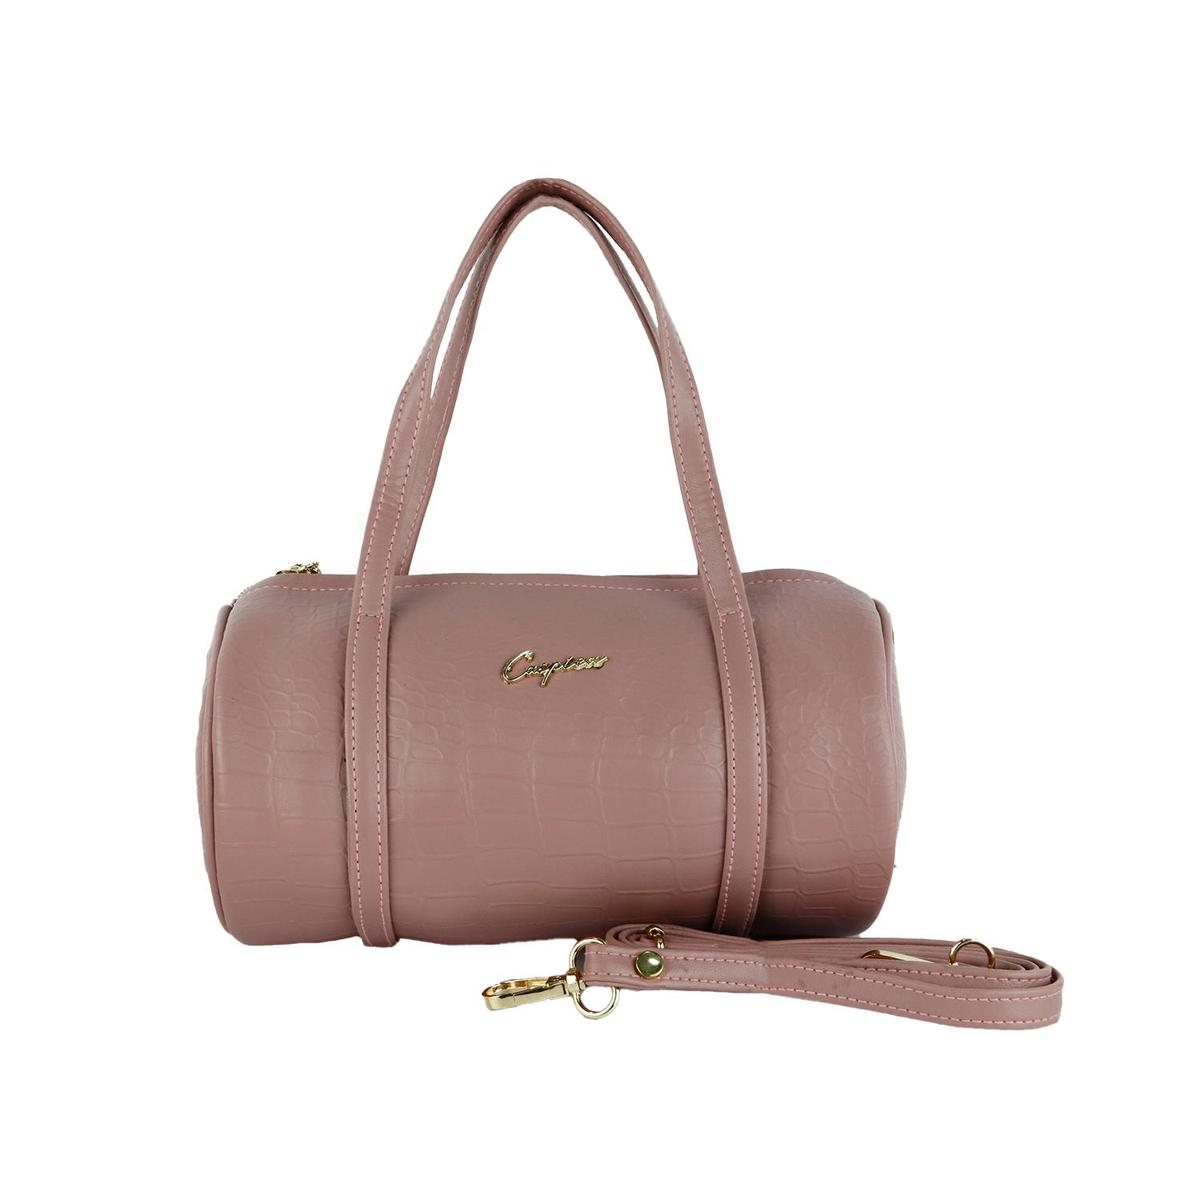 Lely's - Stylish Sling Bag For Woman